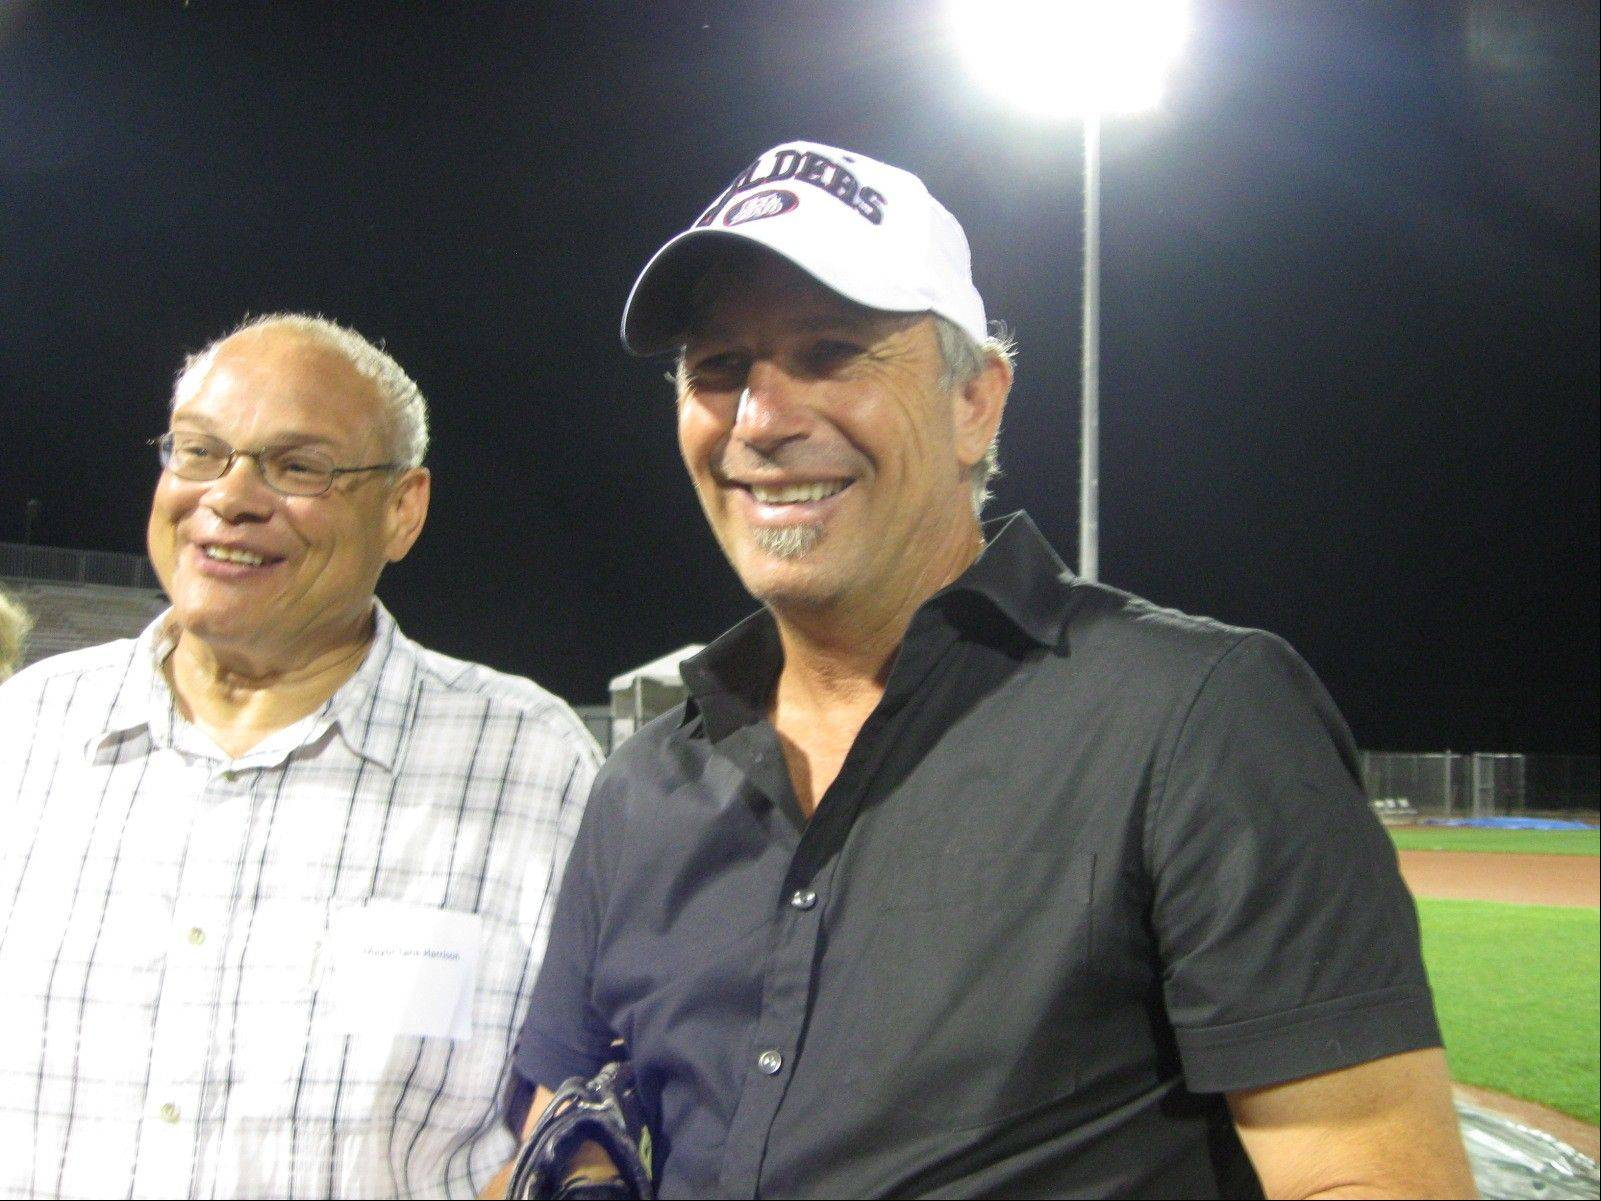 Zion Mayor Lane Harrison, left, had touted the Lake County Fielders as an economic boost for his city. He joined actor Kevin Costner, a Fielders investor, on an off day at Zion's temporary baseball stadium last year.